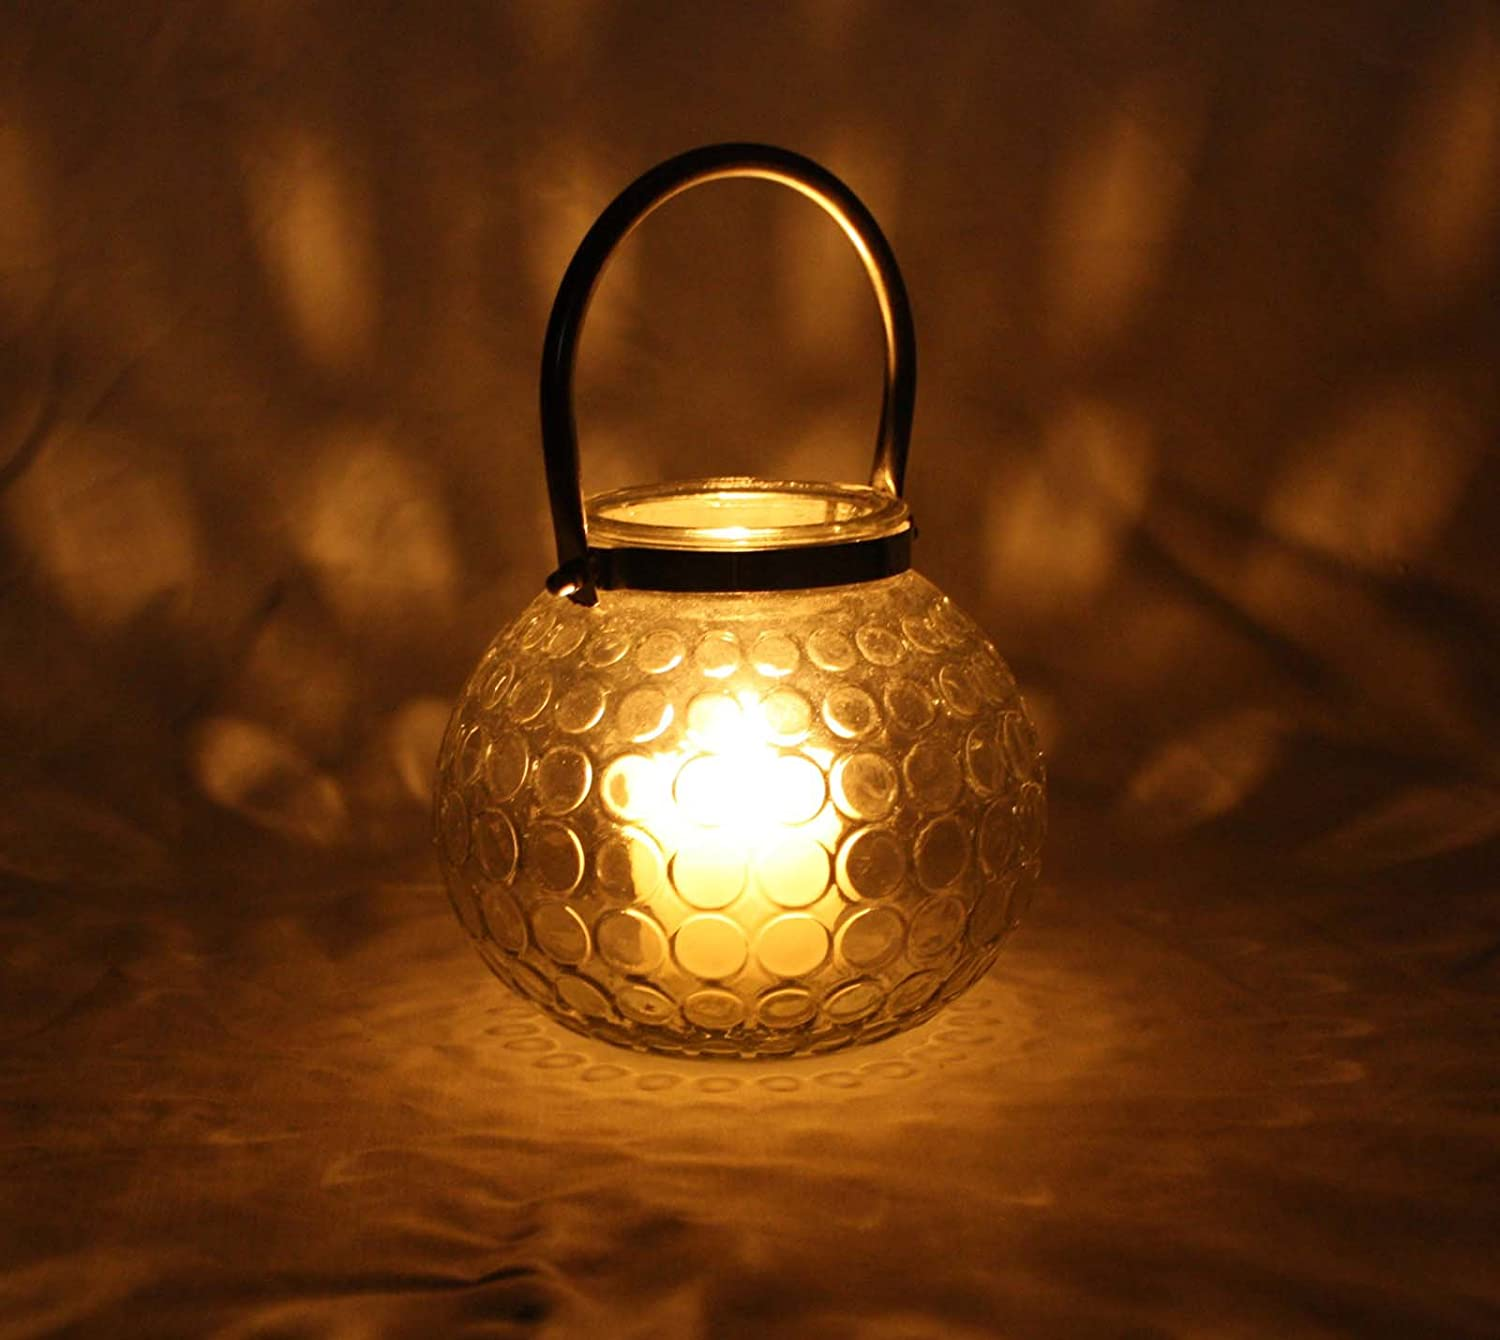 marymarygardens Glass Ball with Silver Coloured Handle Candle Holder